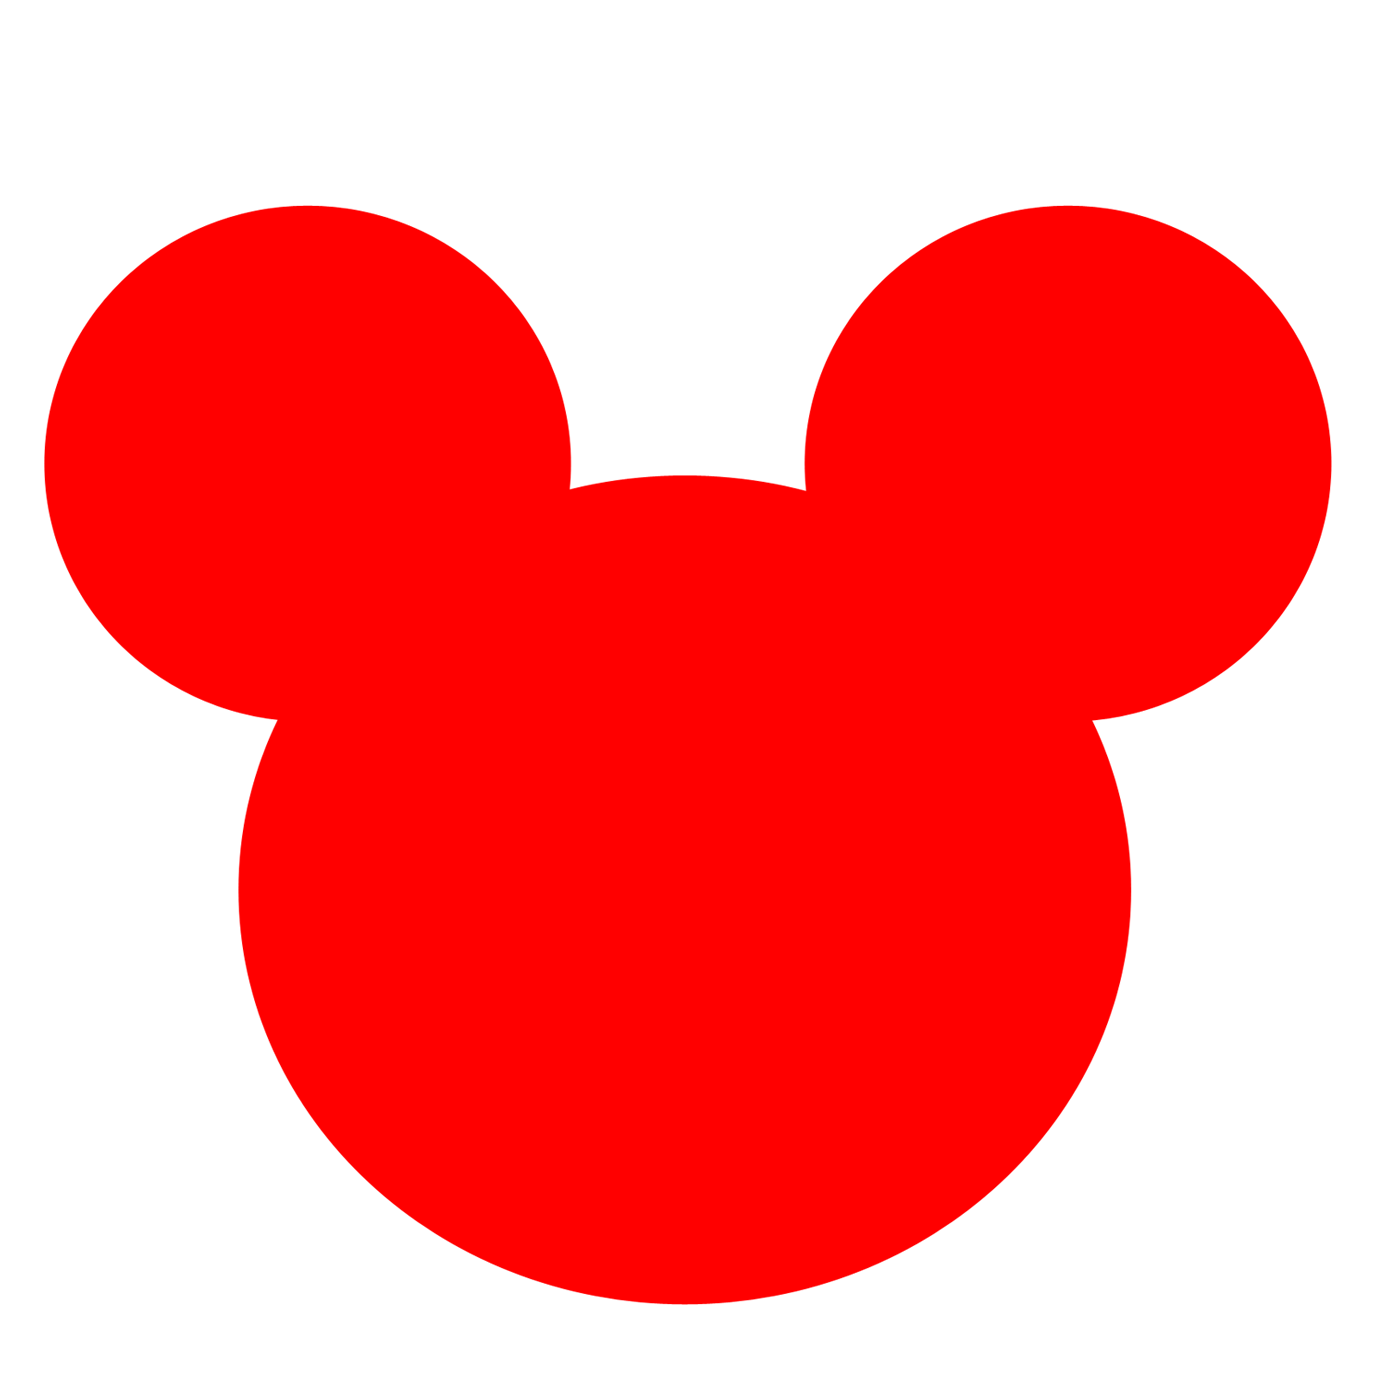 Mickey mouse face clip art free clipart images